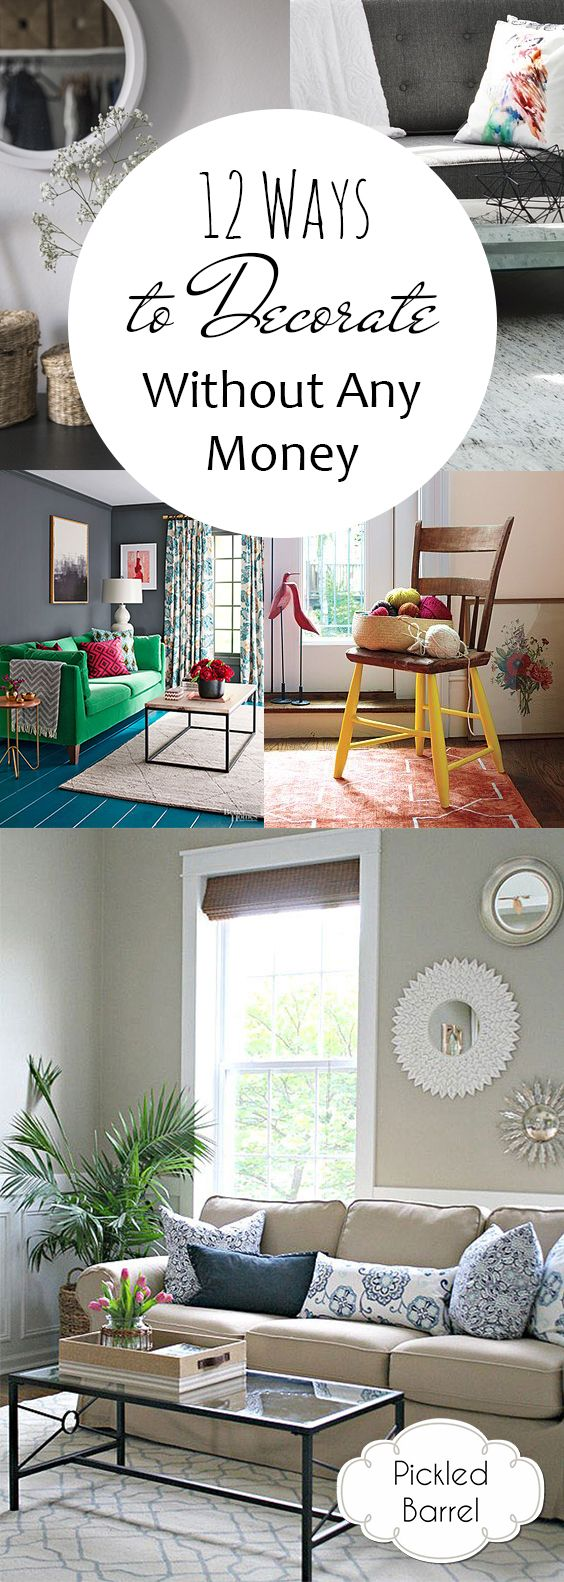 12 Ways to Decorate Without Any Money| How to Decorate Withouy Money, Decorating Without Money, Home Decor Tips and Tricks, Home Decor Hacks, Cheap Ways to Decorate, Cheap Home Decorating Hacks, Popular Pin